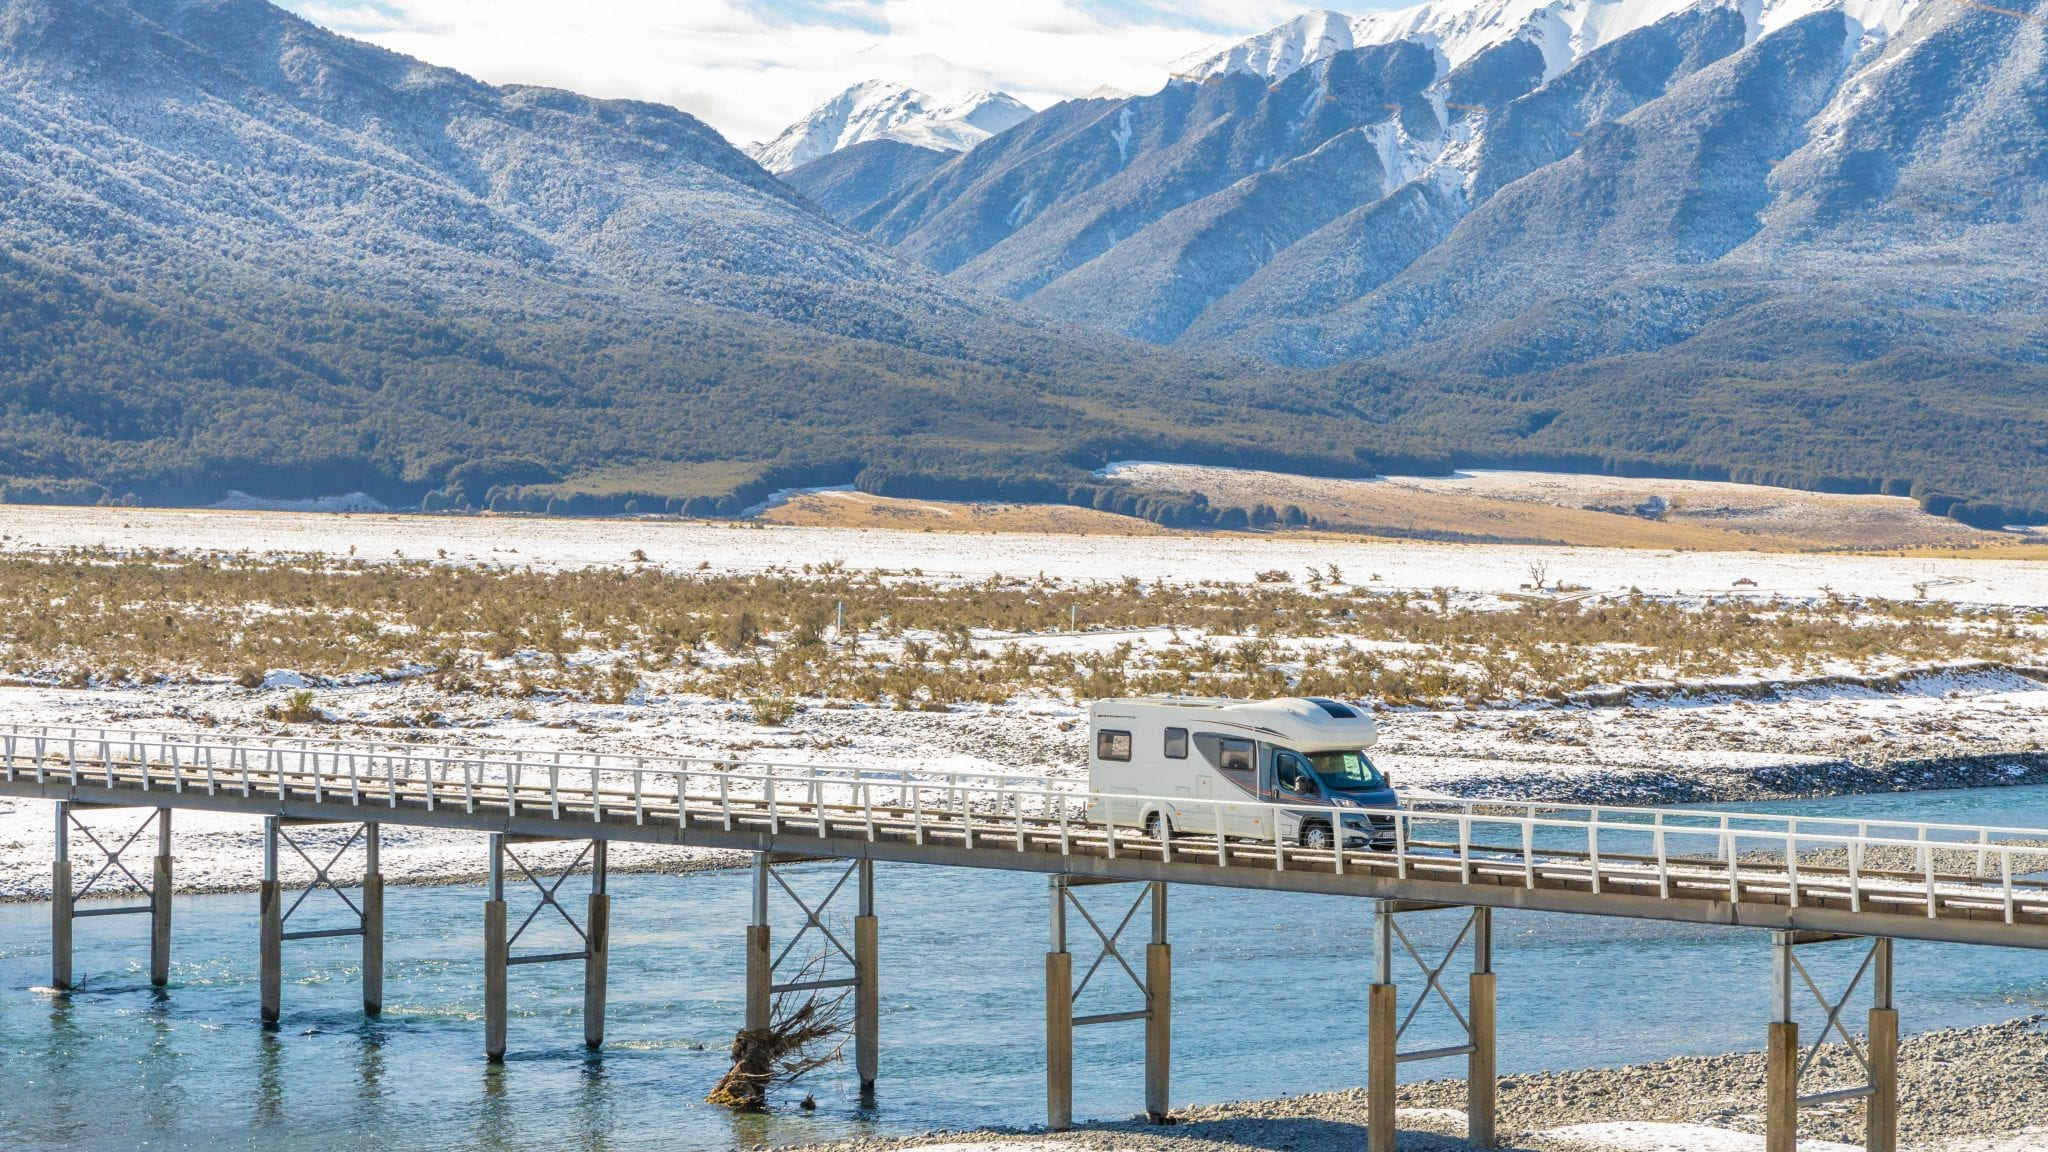 Campervan travelling across a long bridge with snow capped mountains in the background